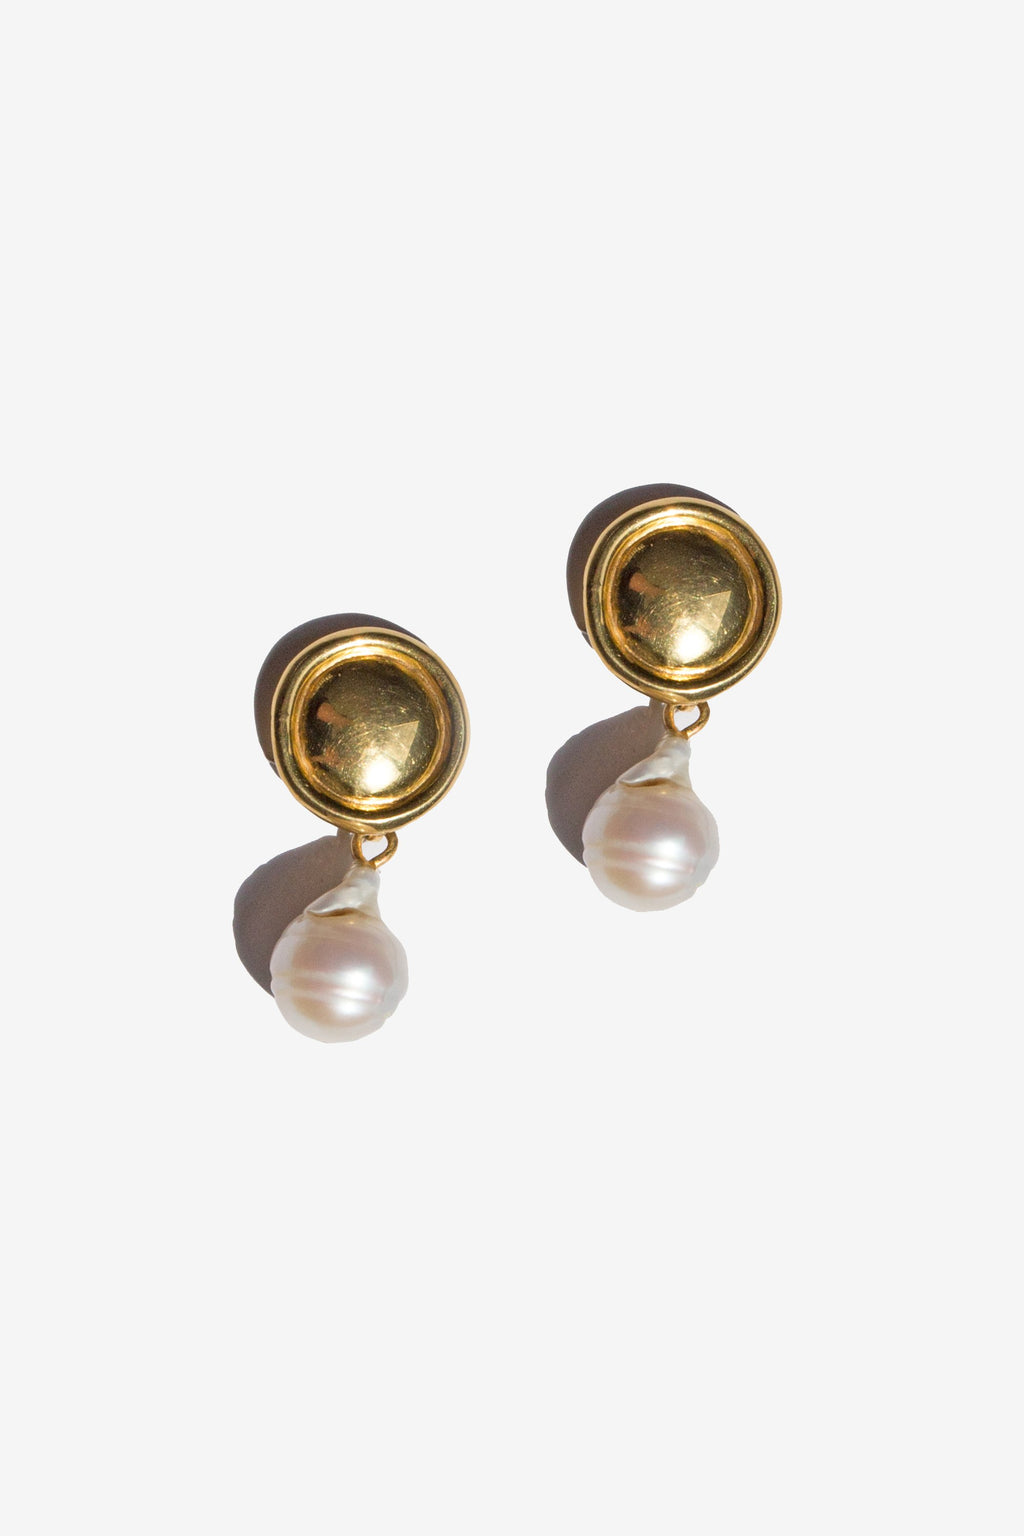 flash - eva earrings - gold